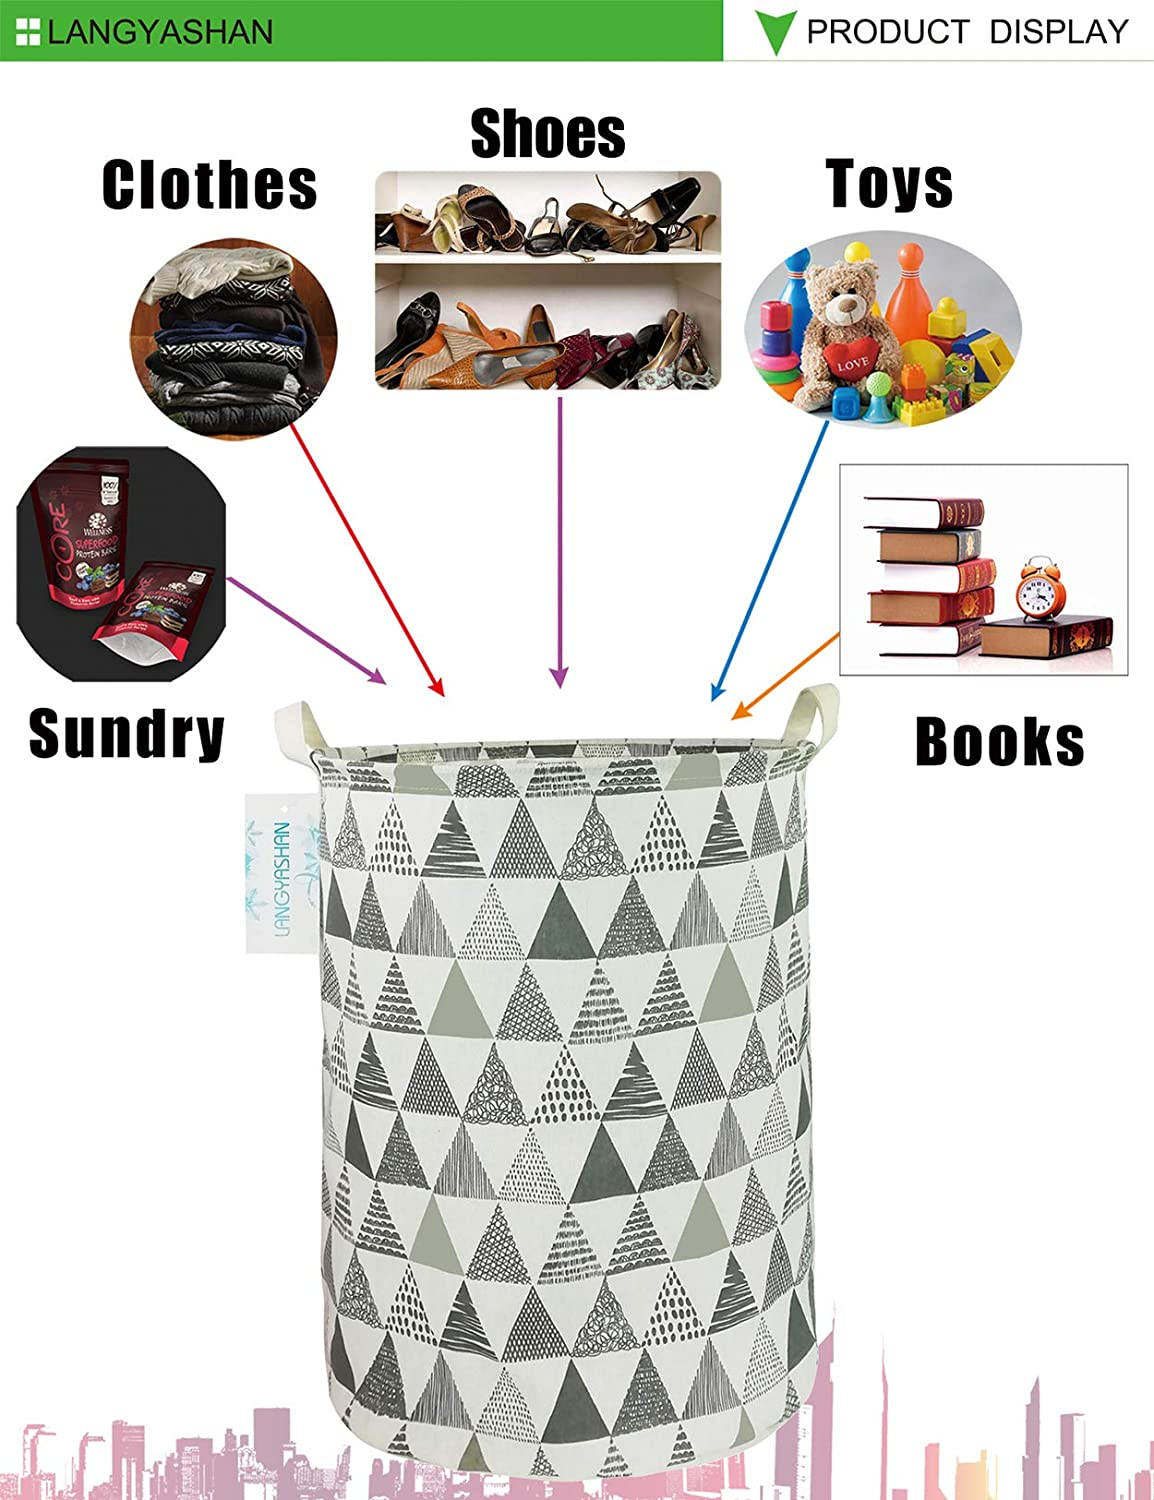 REC Grey Point Clothes,Baby Nursery LANGYASHAN Storage Bin,Canvas Fabric Collapsible Organizer Basket for Laundry Hamper,Toy Bins,Gift Baskets Bedroom